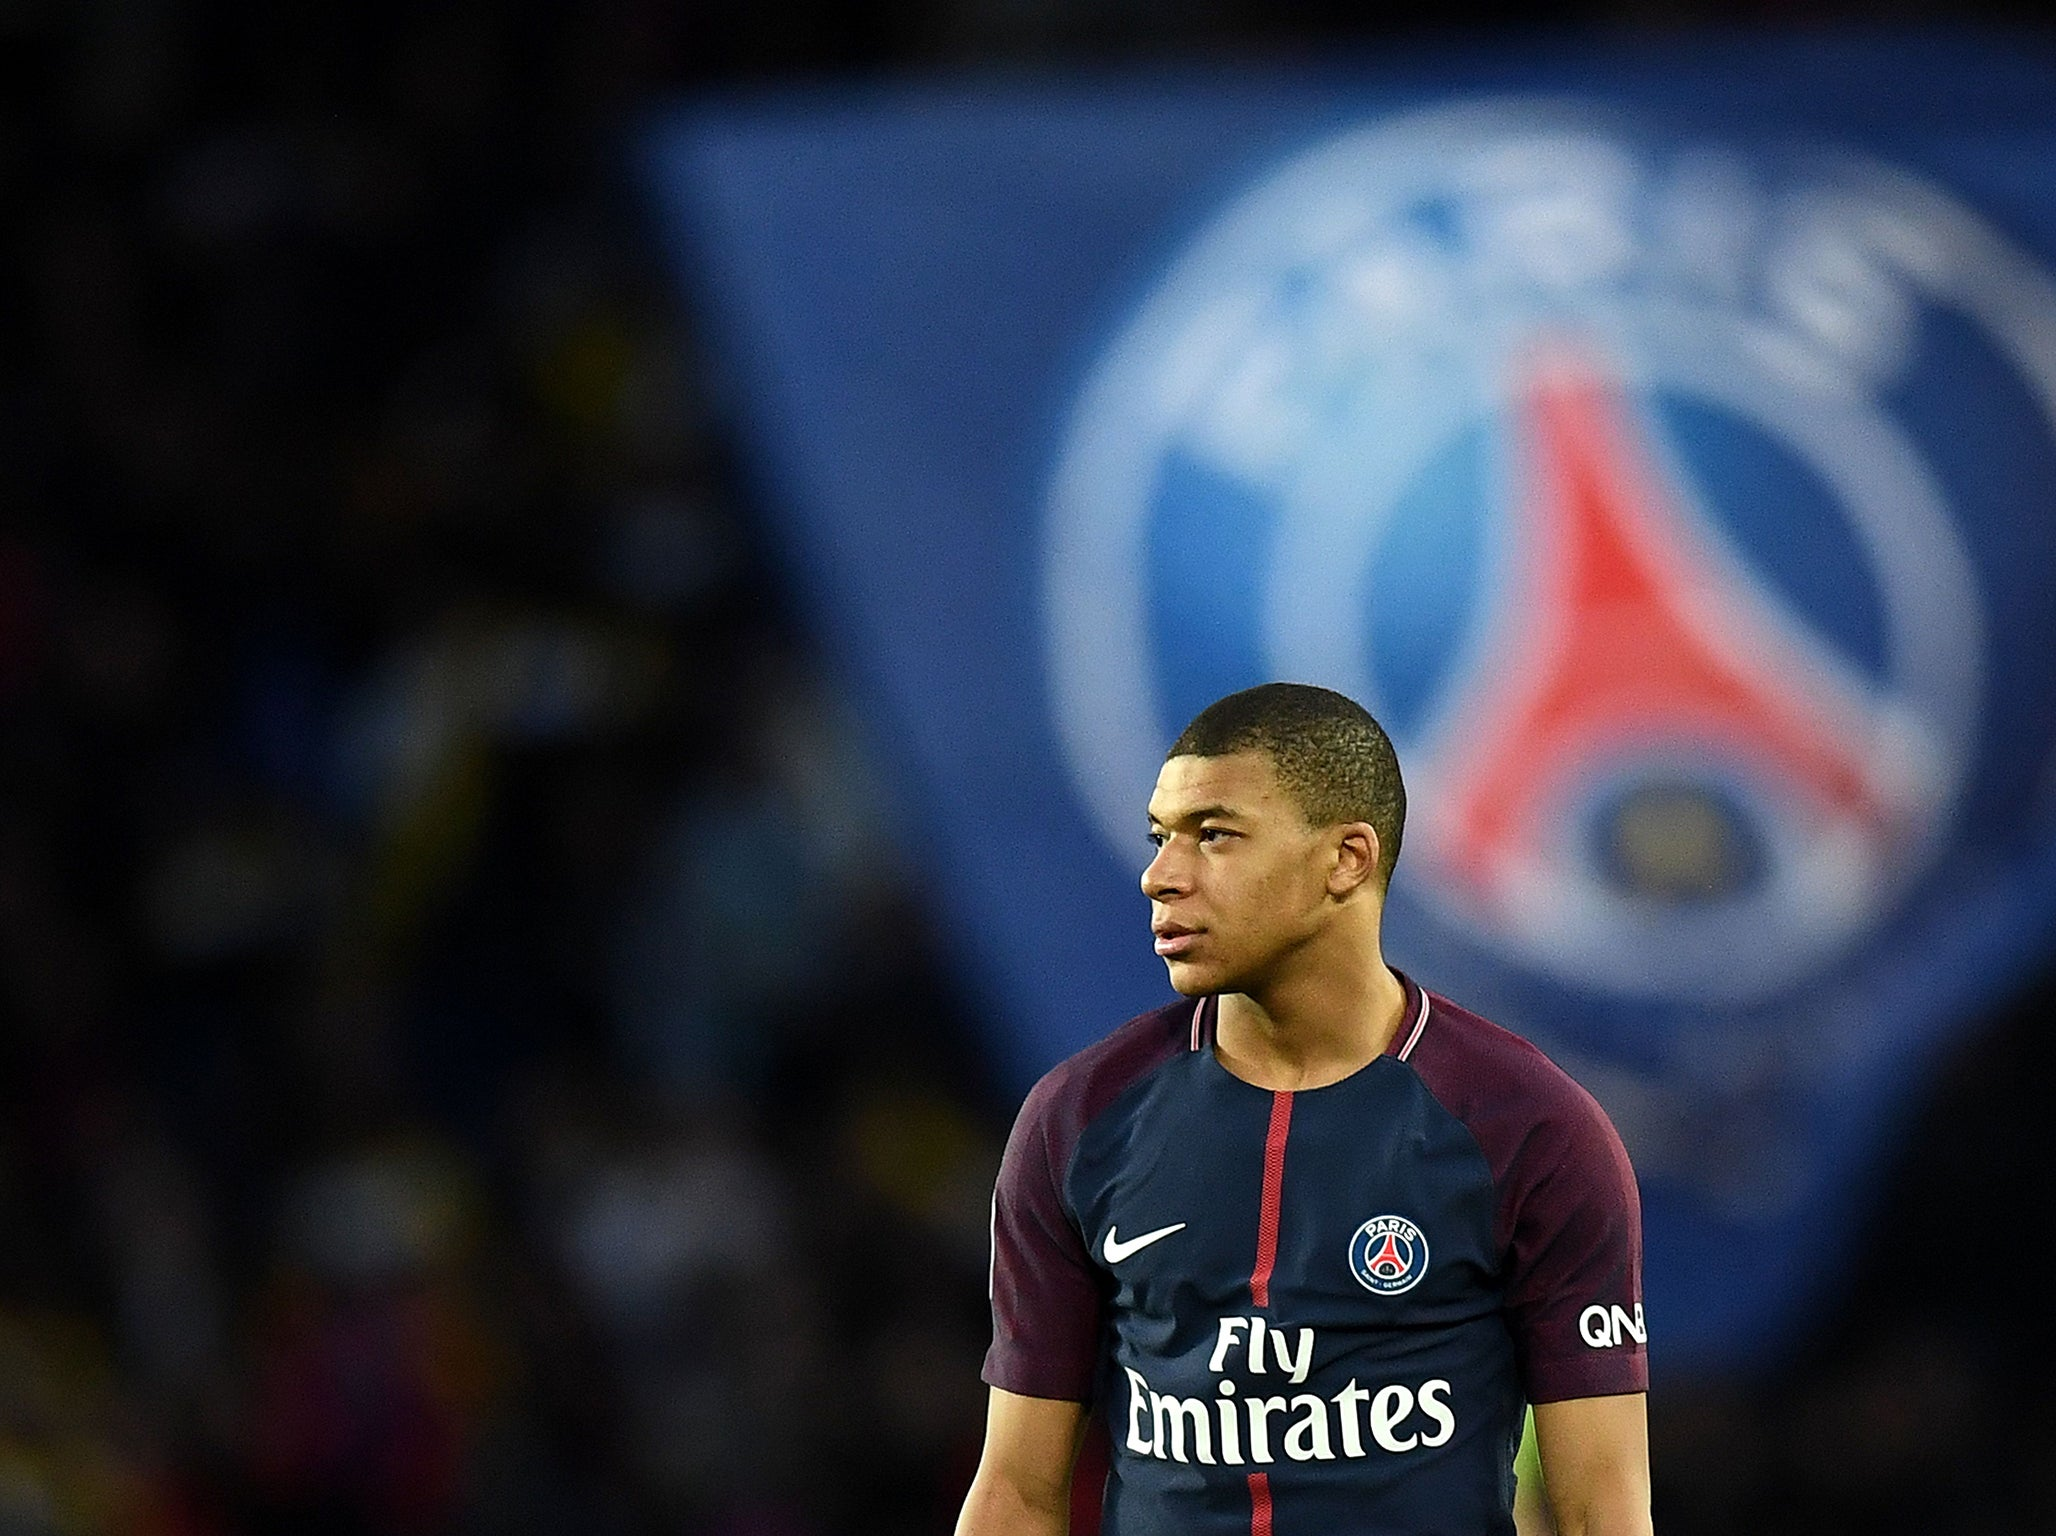 Kylian Mbappe (PSG/Monaco to Manchester City)